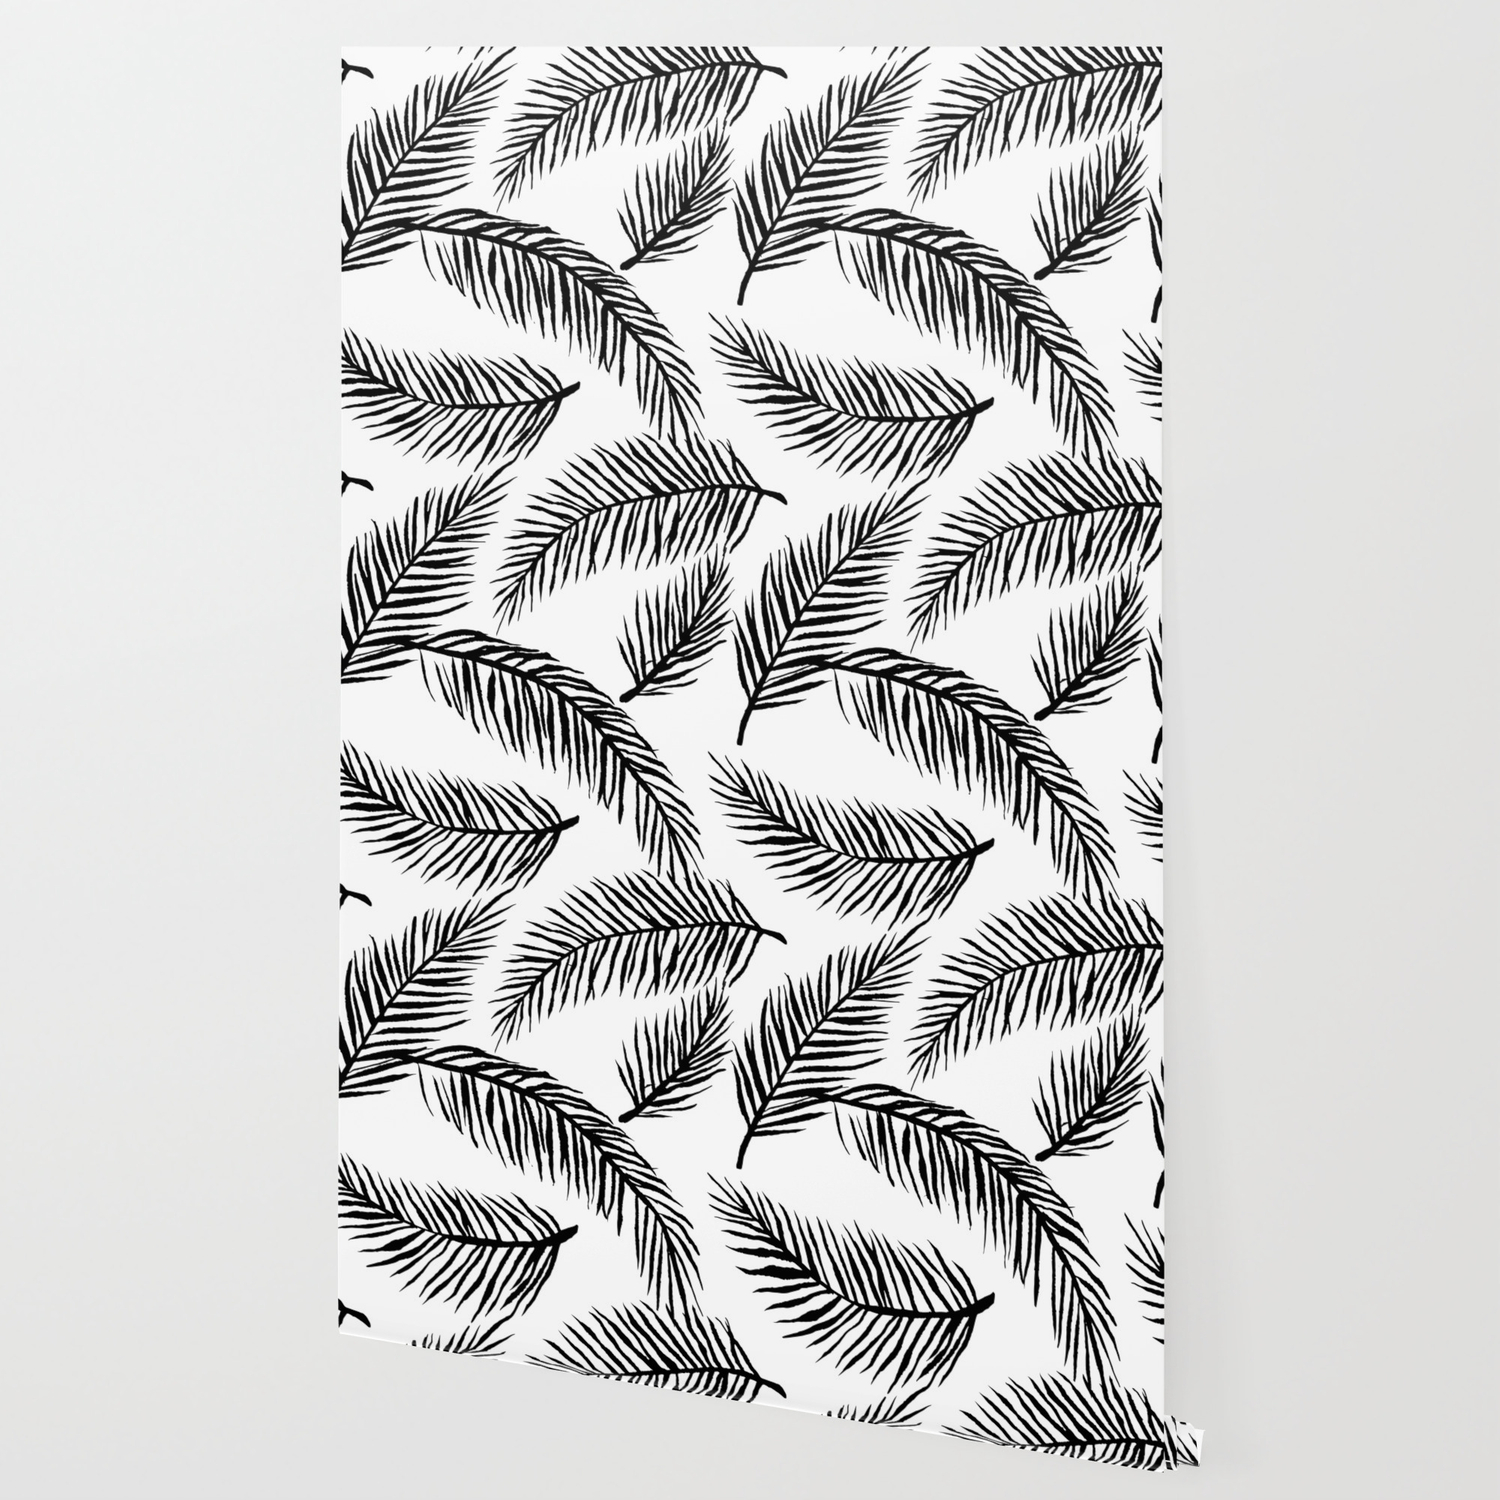 Black White Palm Leaves Wallpaper By Amandarachlee Society6 Browse our tropical leaves wallpaper collection with filter setting like size, type, color etc. black white palm leaves wallpaper by amandarachlee